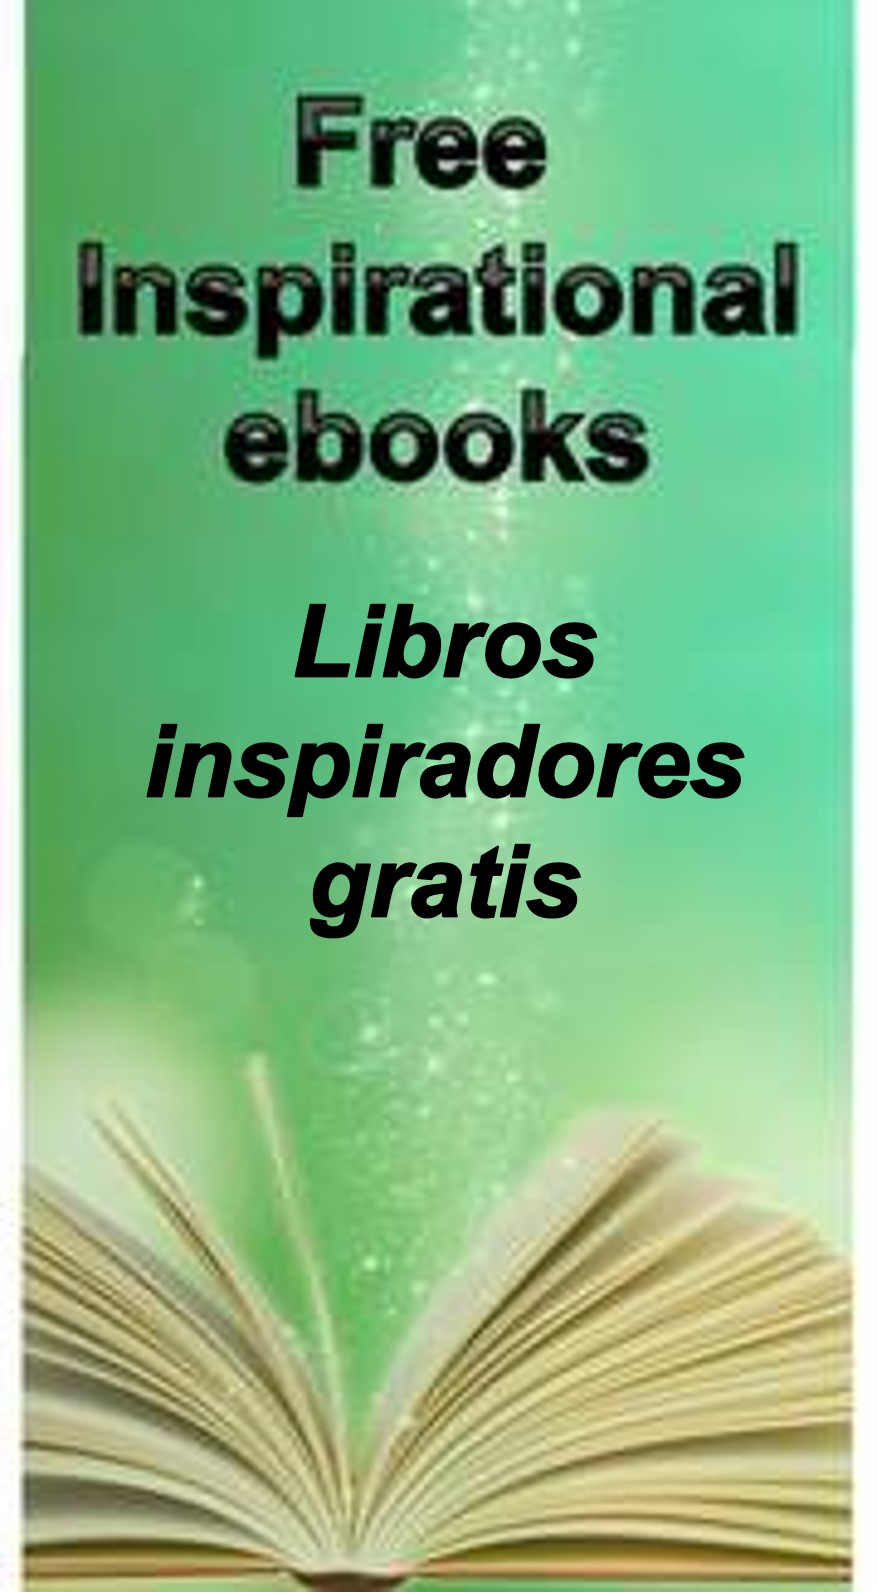 free ebooks, ebooks and magazines for youth and adults - libros y ebooks gratis para jovenes y adultos